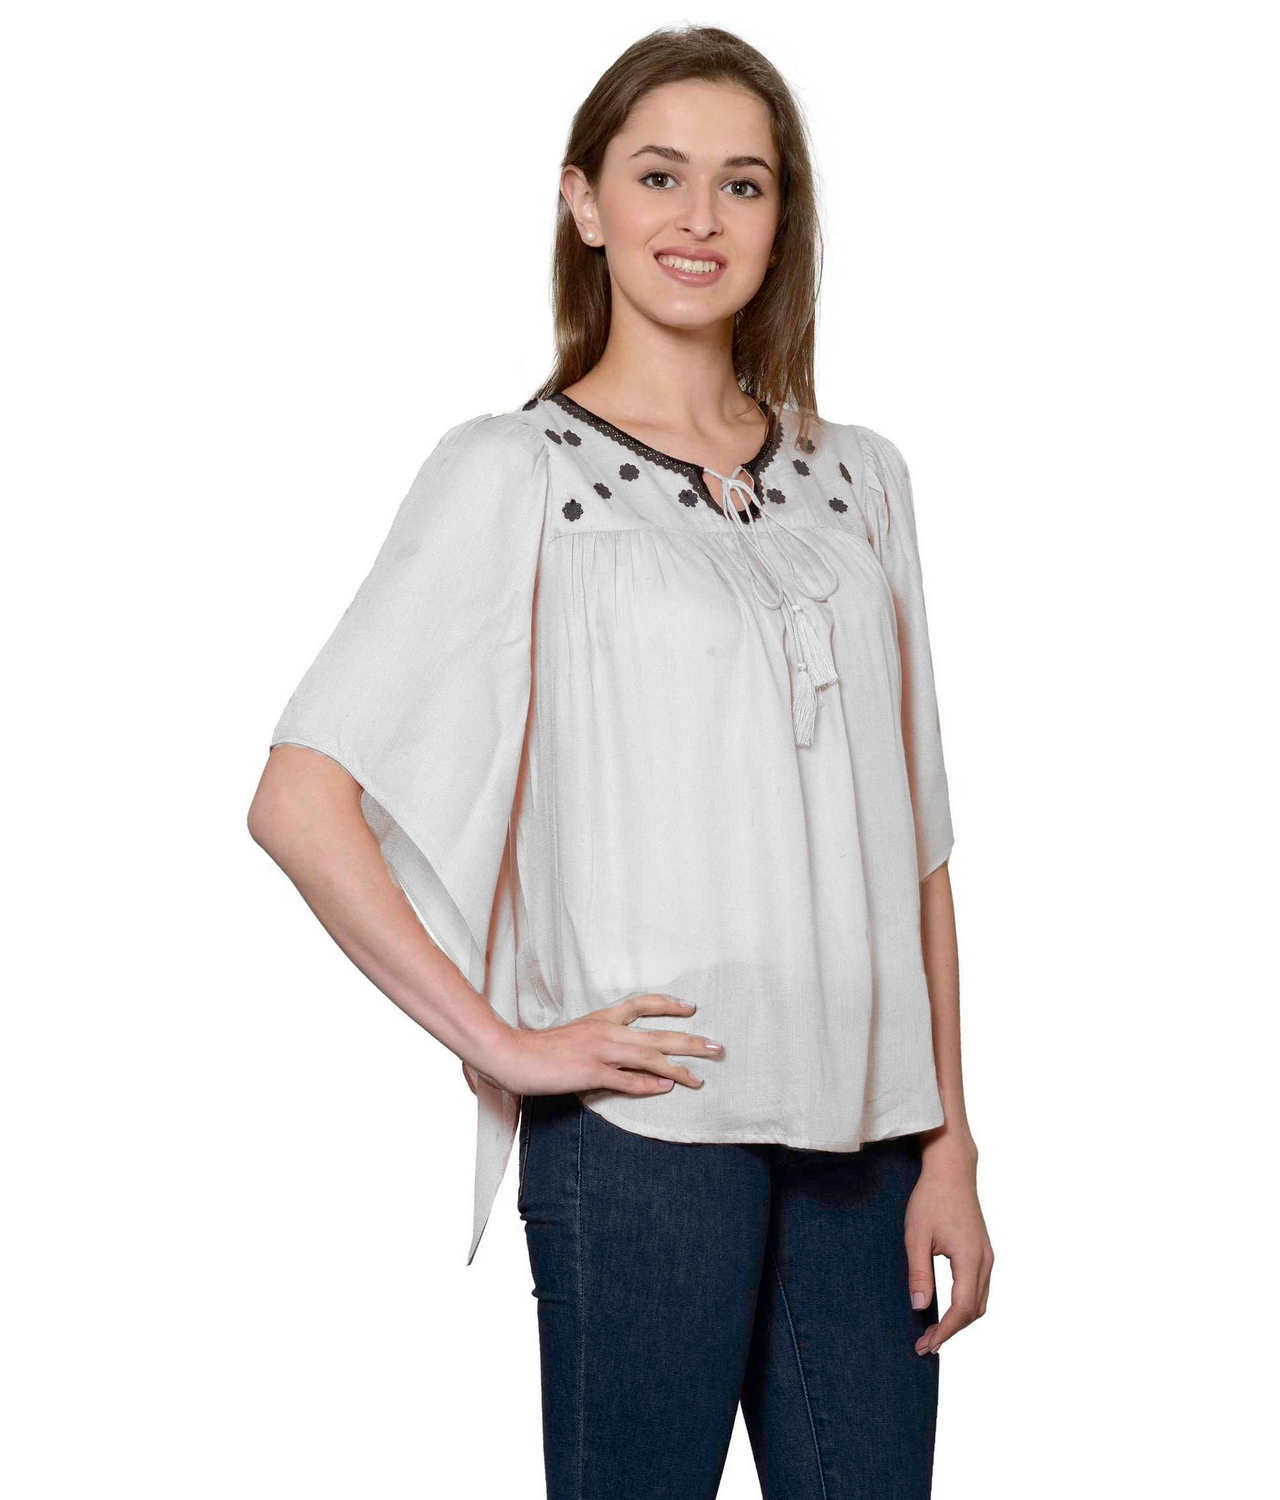 Butterfly Sleeve Empire Top in White